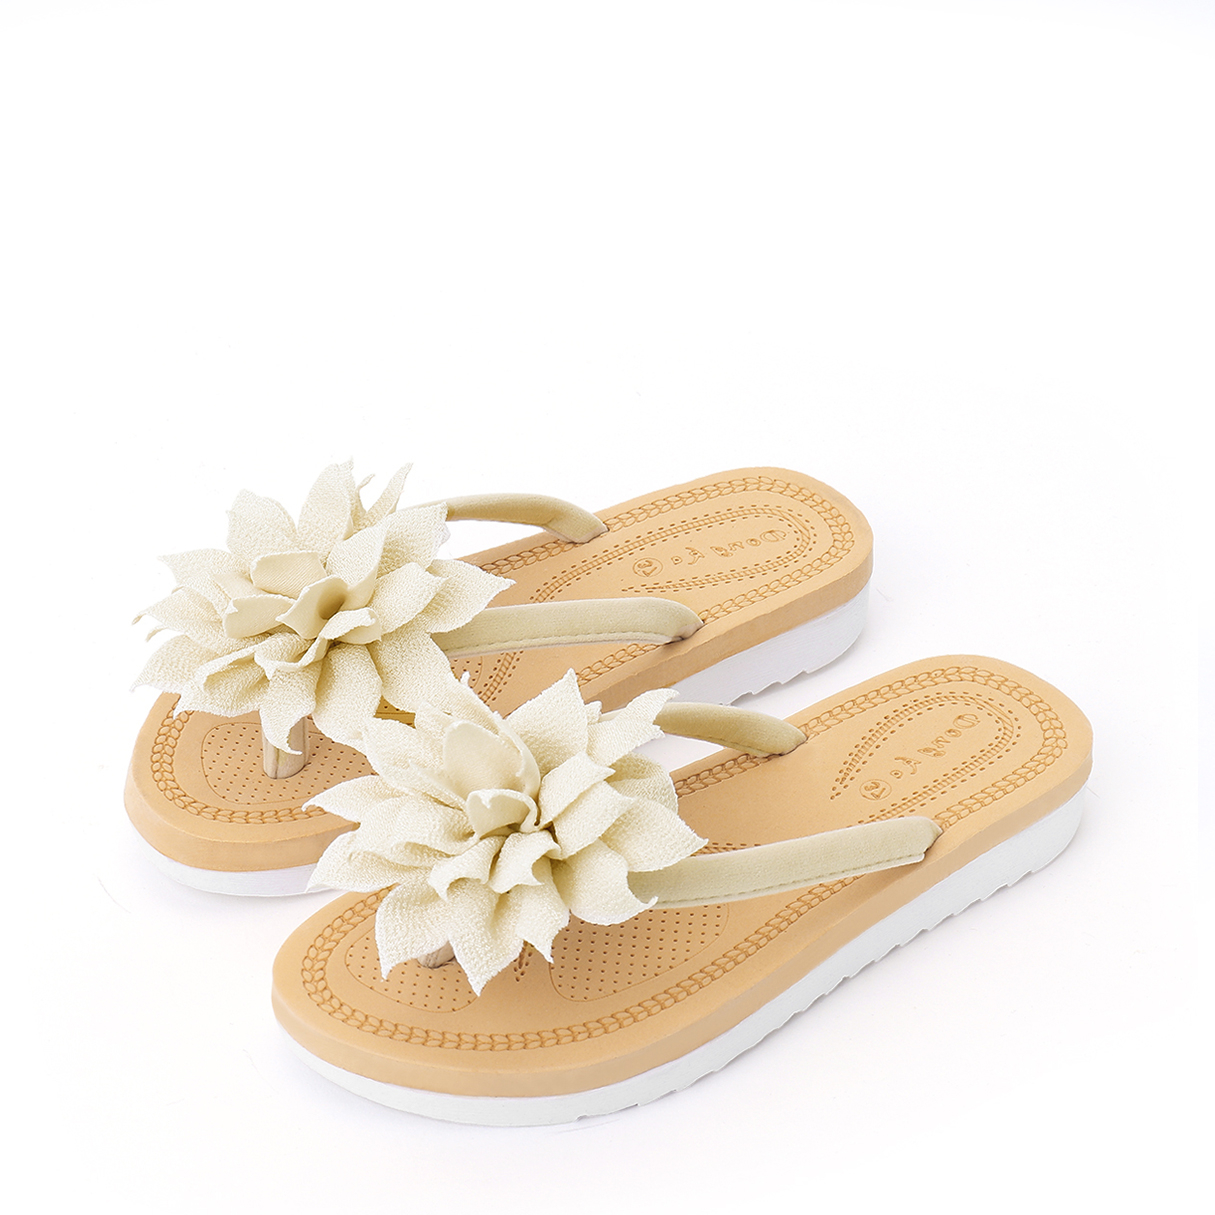 Vocation Flower Decoration Slippers in White brady b 401 polystyrene rectangle white personal hygiene sign 14 in width x 10 in height text this is your wash room please help keep it clean 22856 [price is per each]